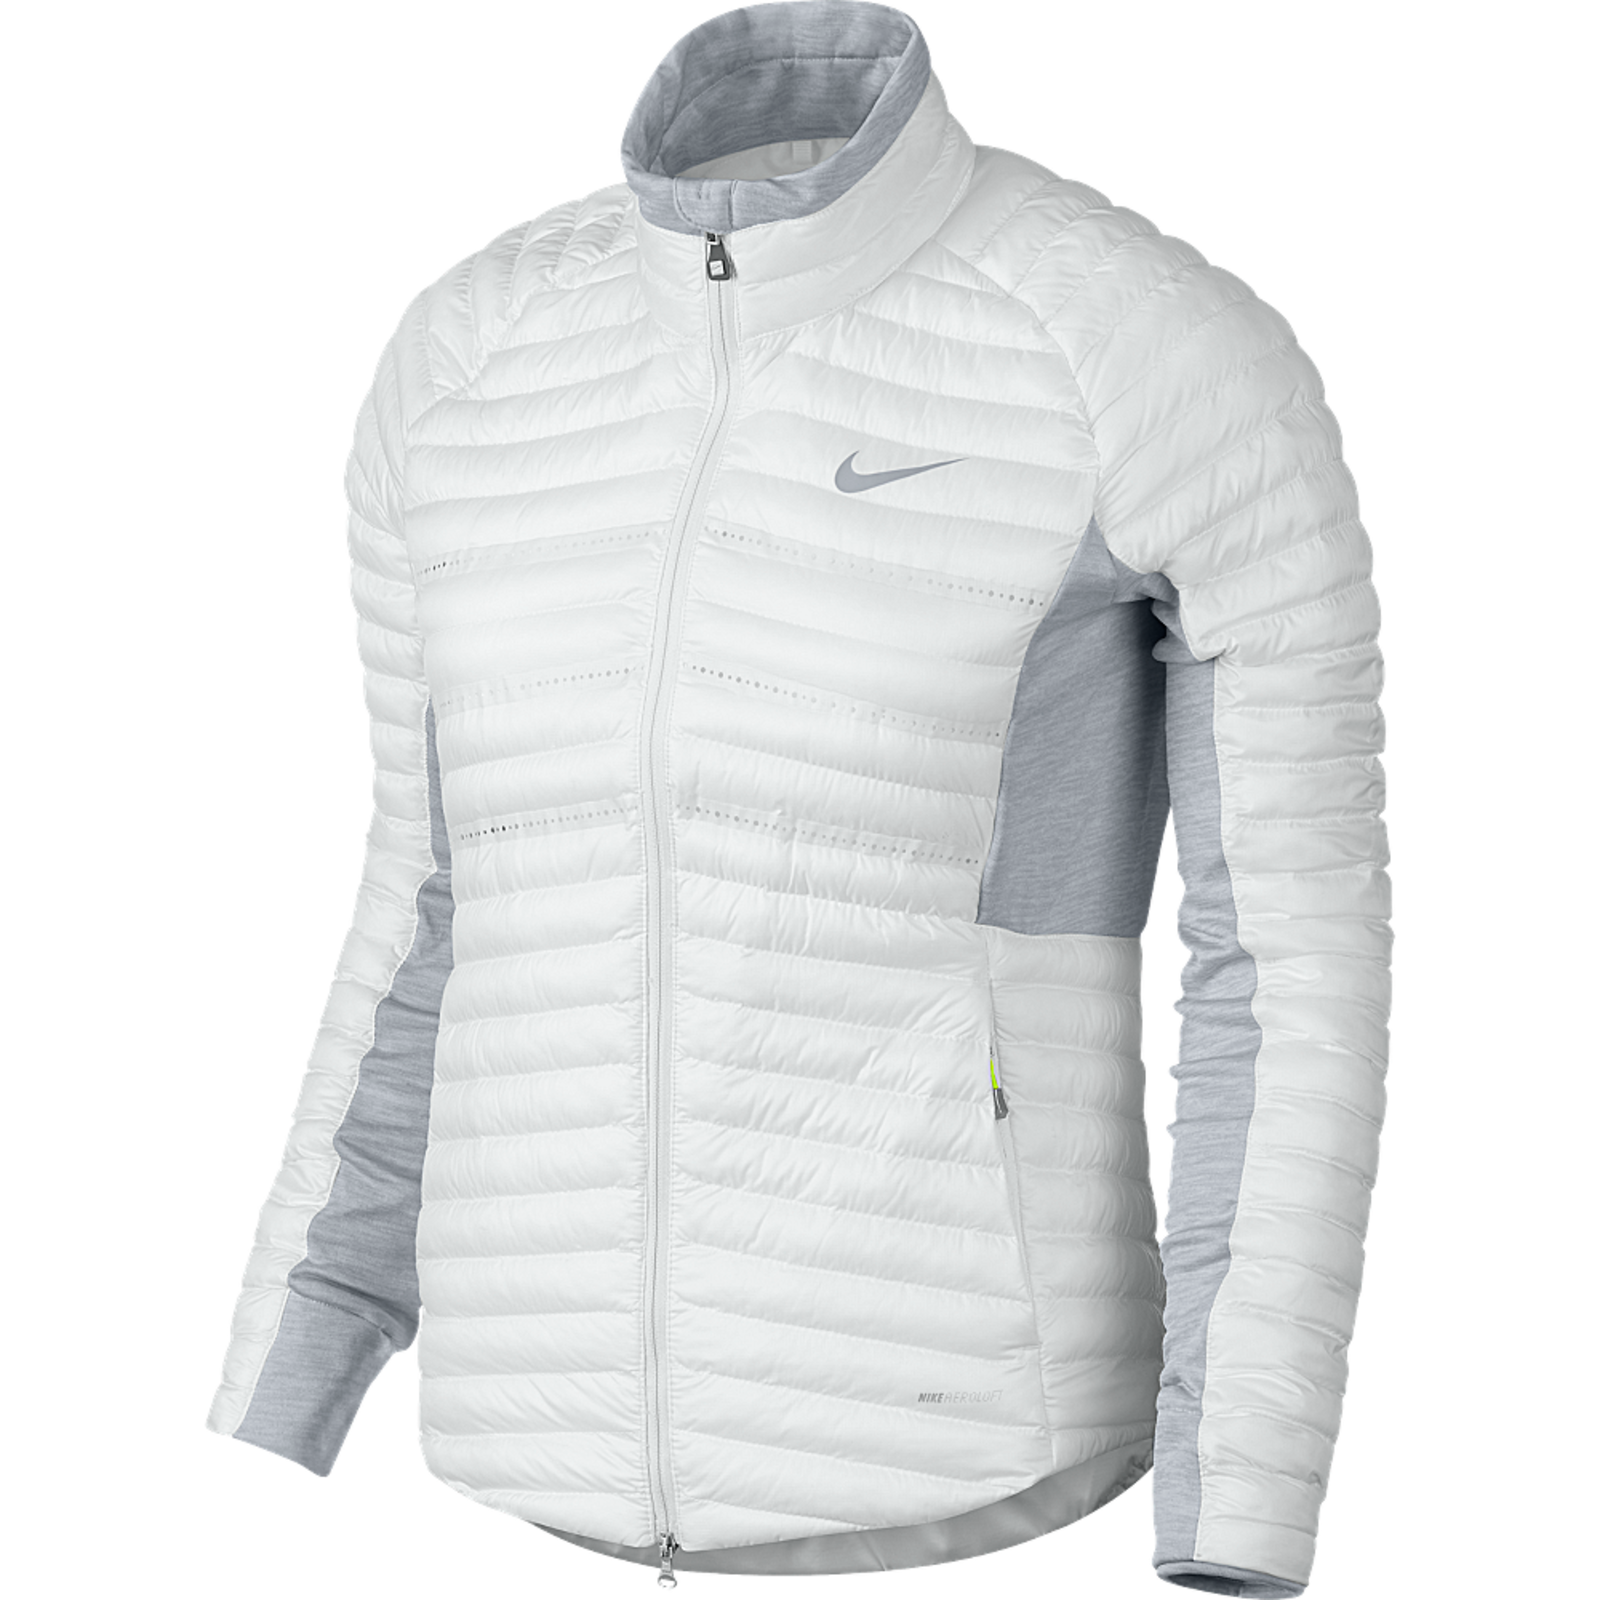 Warm Wear For Winter Rounds Nike News